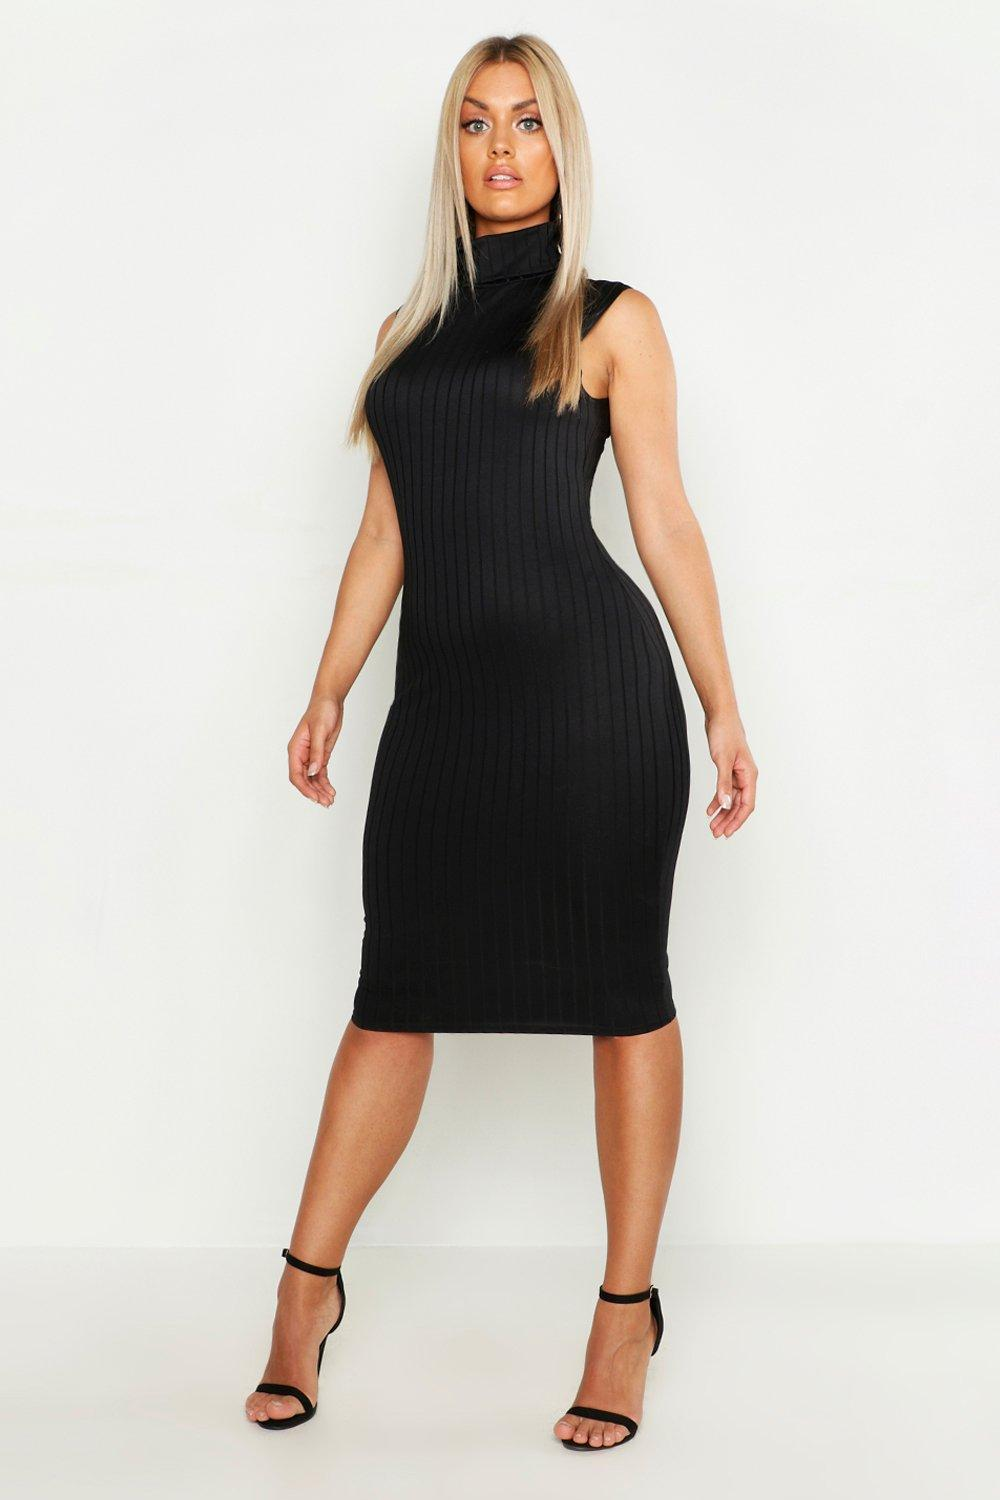 3619e96642e4 Womens Black Plus Ribbed High Neck Sleevless Midi Dress. Hover to zoom